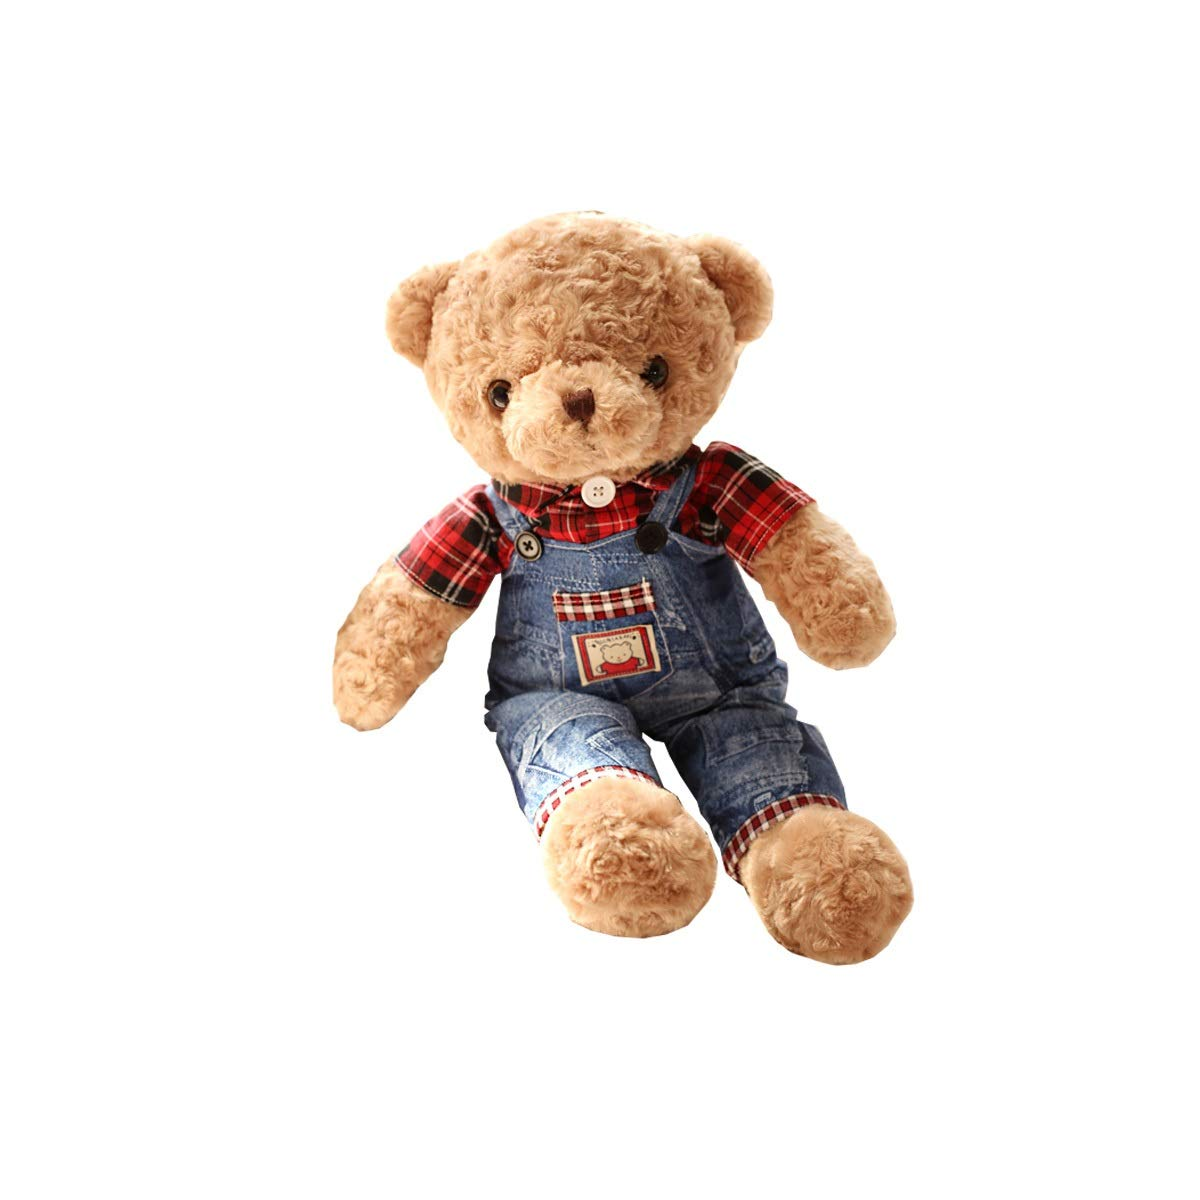 Female 19 inches Female 19 inches Shengshihuizhong Plush Toys, Teddy Bear Plush Toys, Cute Sleeping Pillows, Jeans Bears, Girls, Dolls, Send Girlfriends Latest Couple Gifts Latest Models